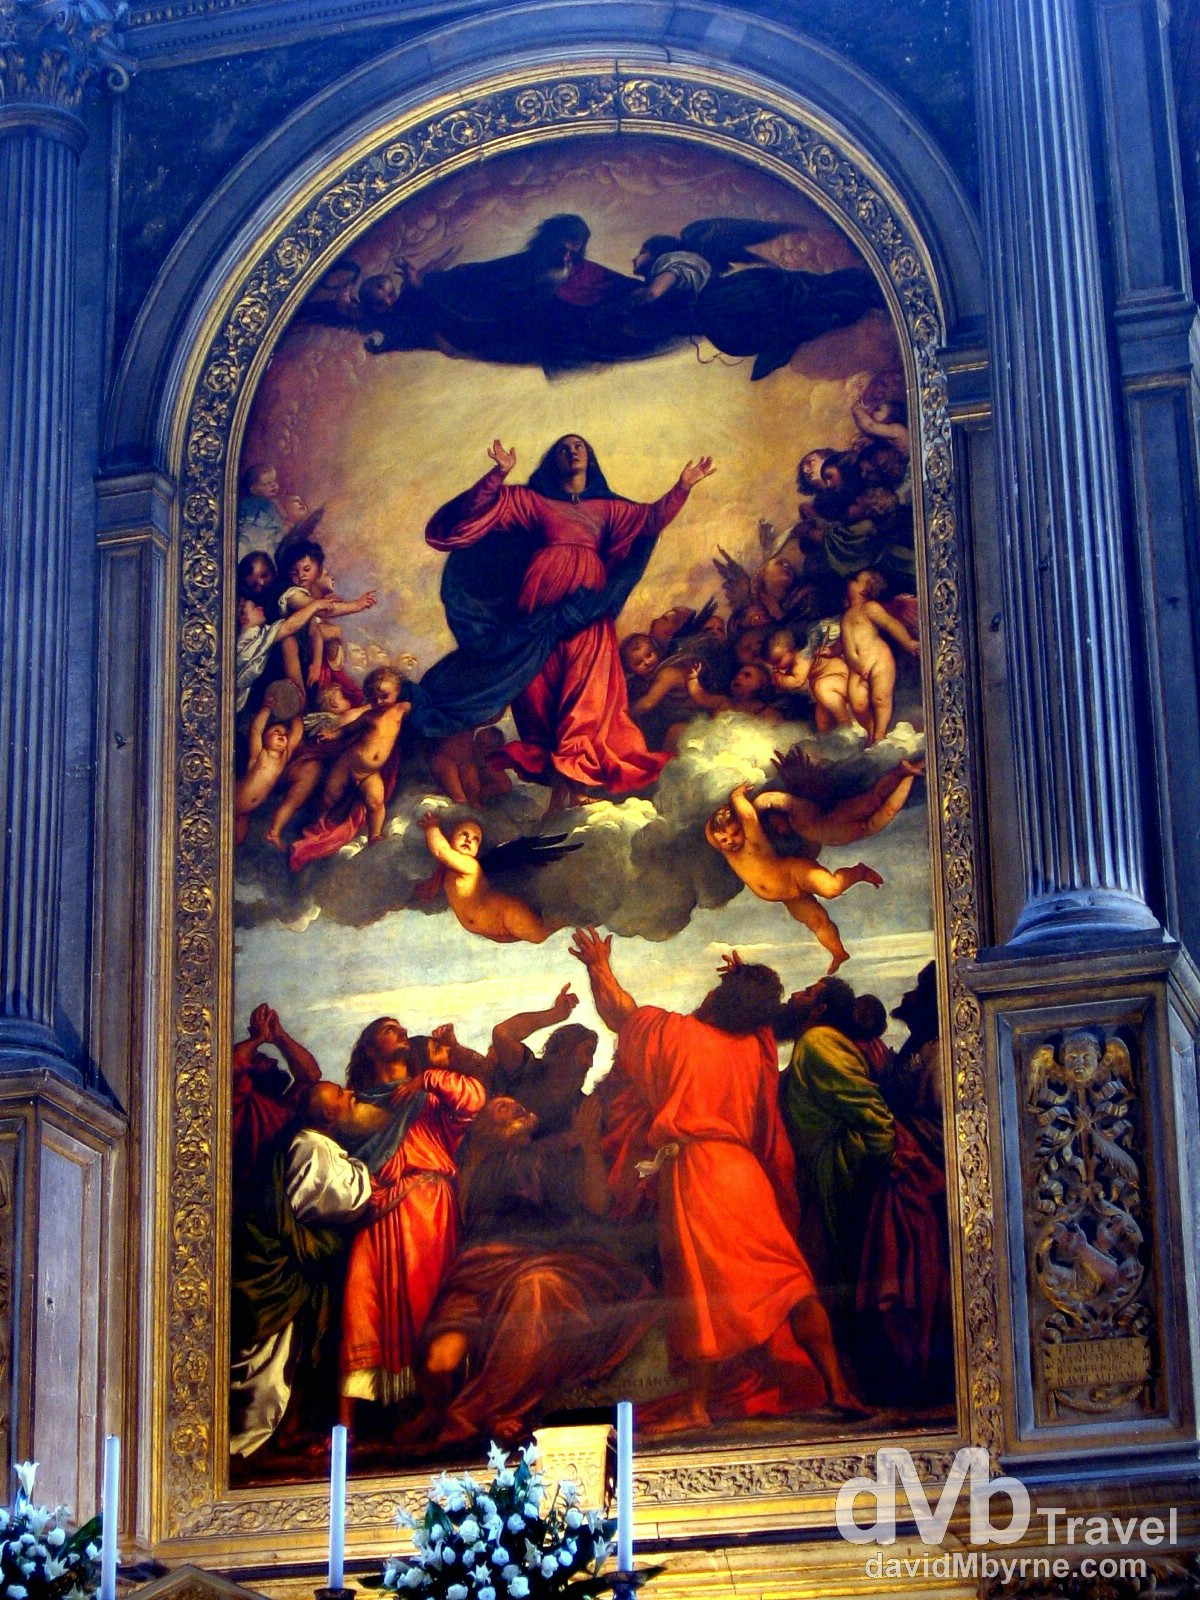 Titian's 1518 The Assumption in Santa Maria Gloriosa dei Frari church, Venice, Veneto, Italy. August 27th, 2007.